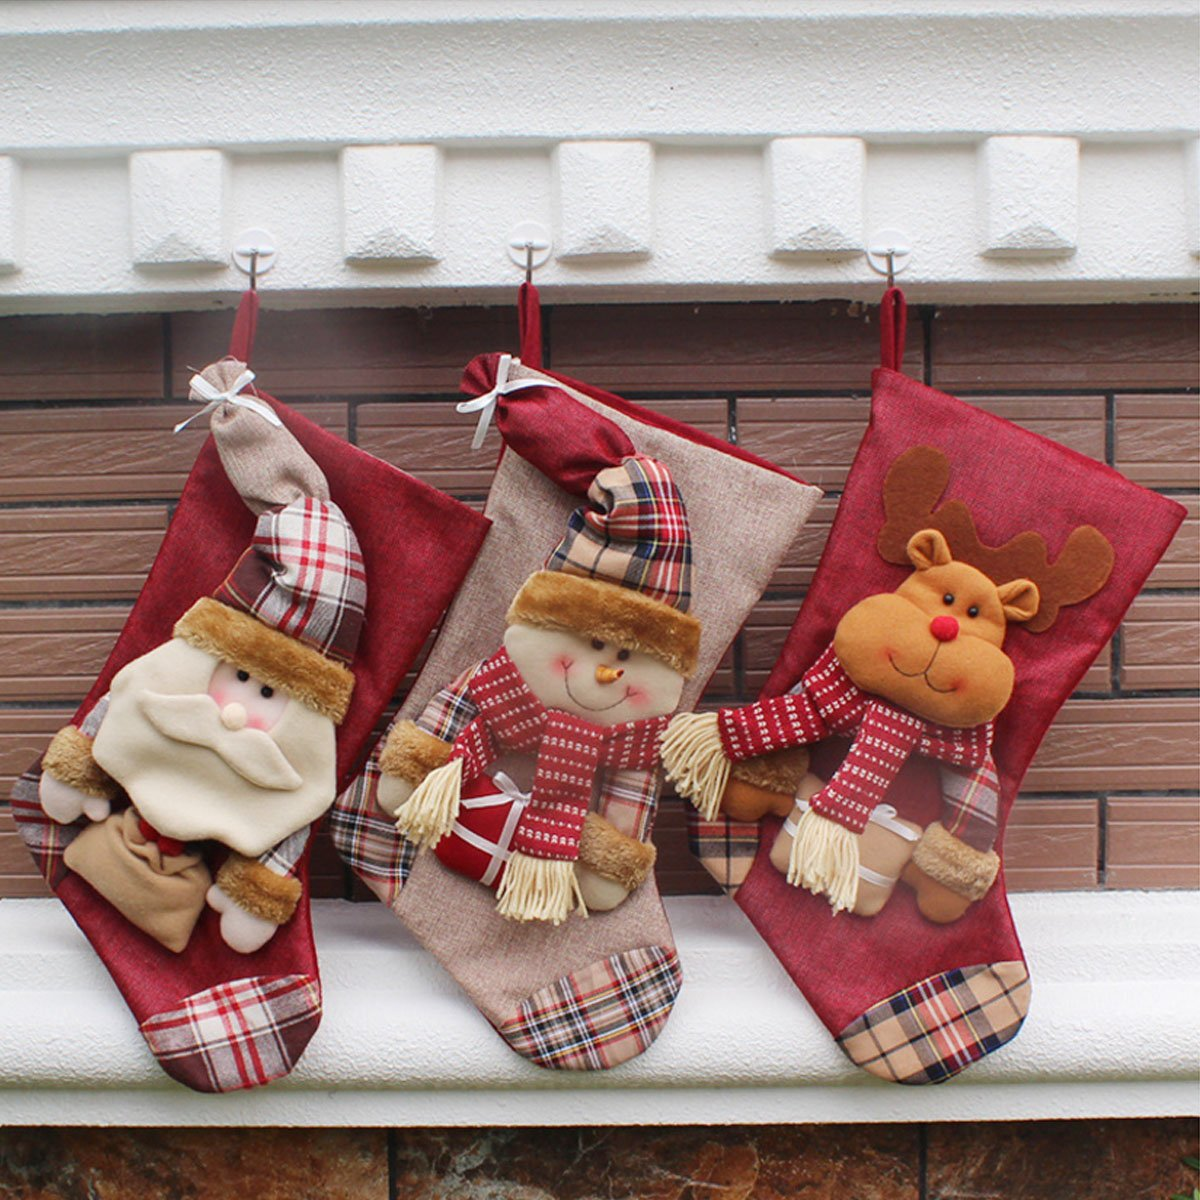 Christmas Stocking, SMTHOME 18'' Set of 3 Santa, Snowman, Reindeer, Xmas Character 3D Plush with Faux Fur Cuff Christmas Decorations and Party Accessory(Long hat)